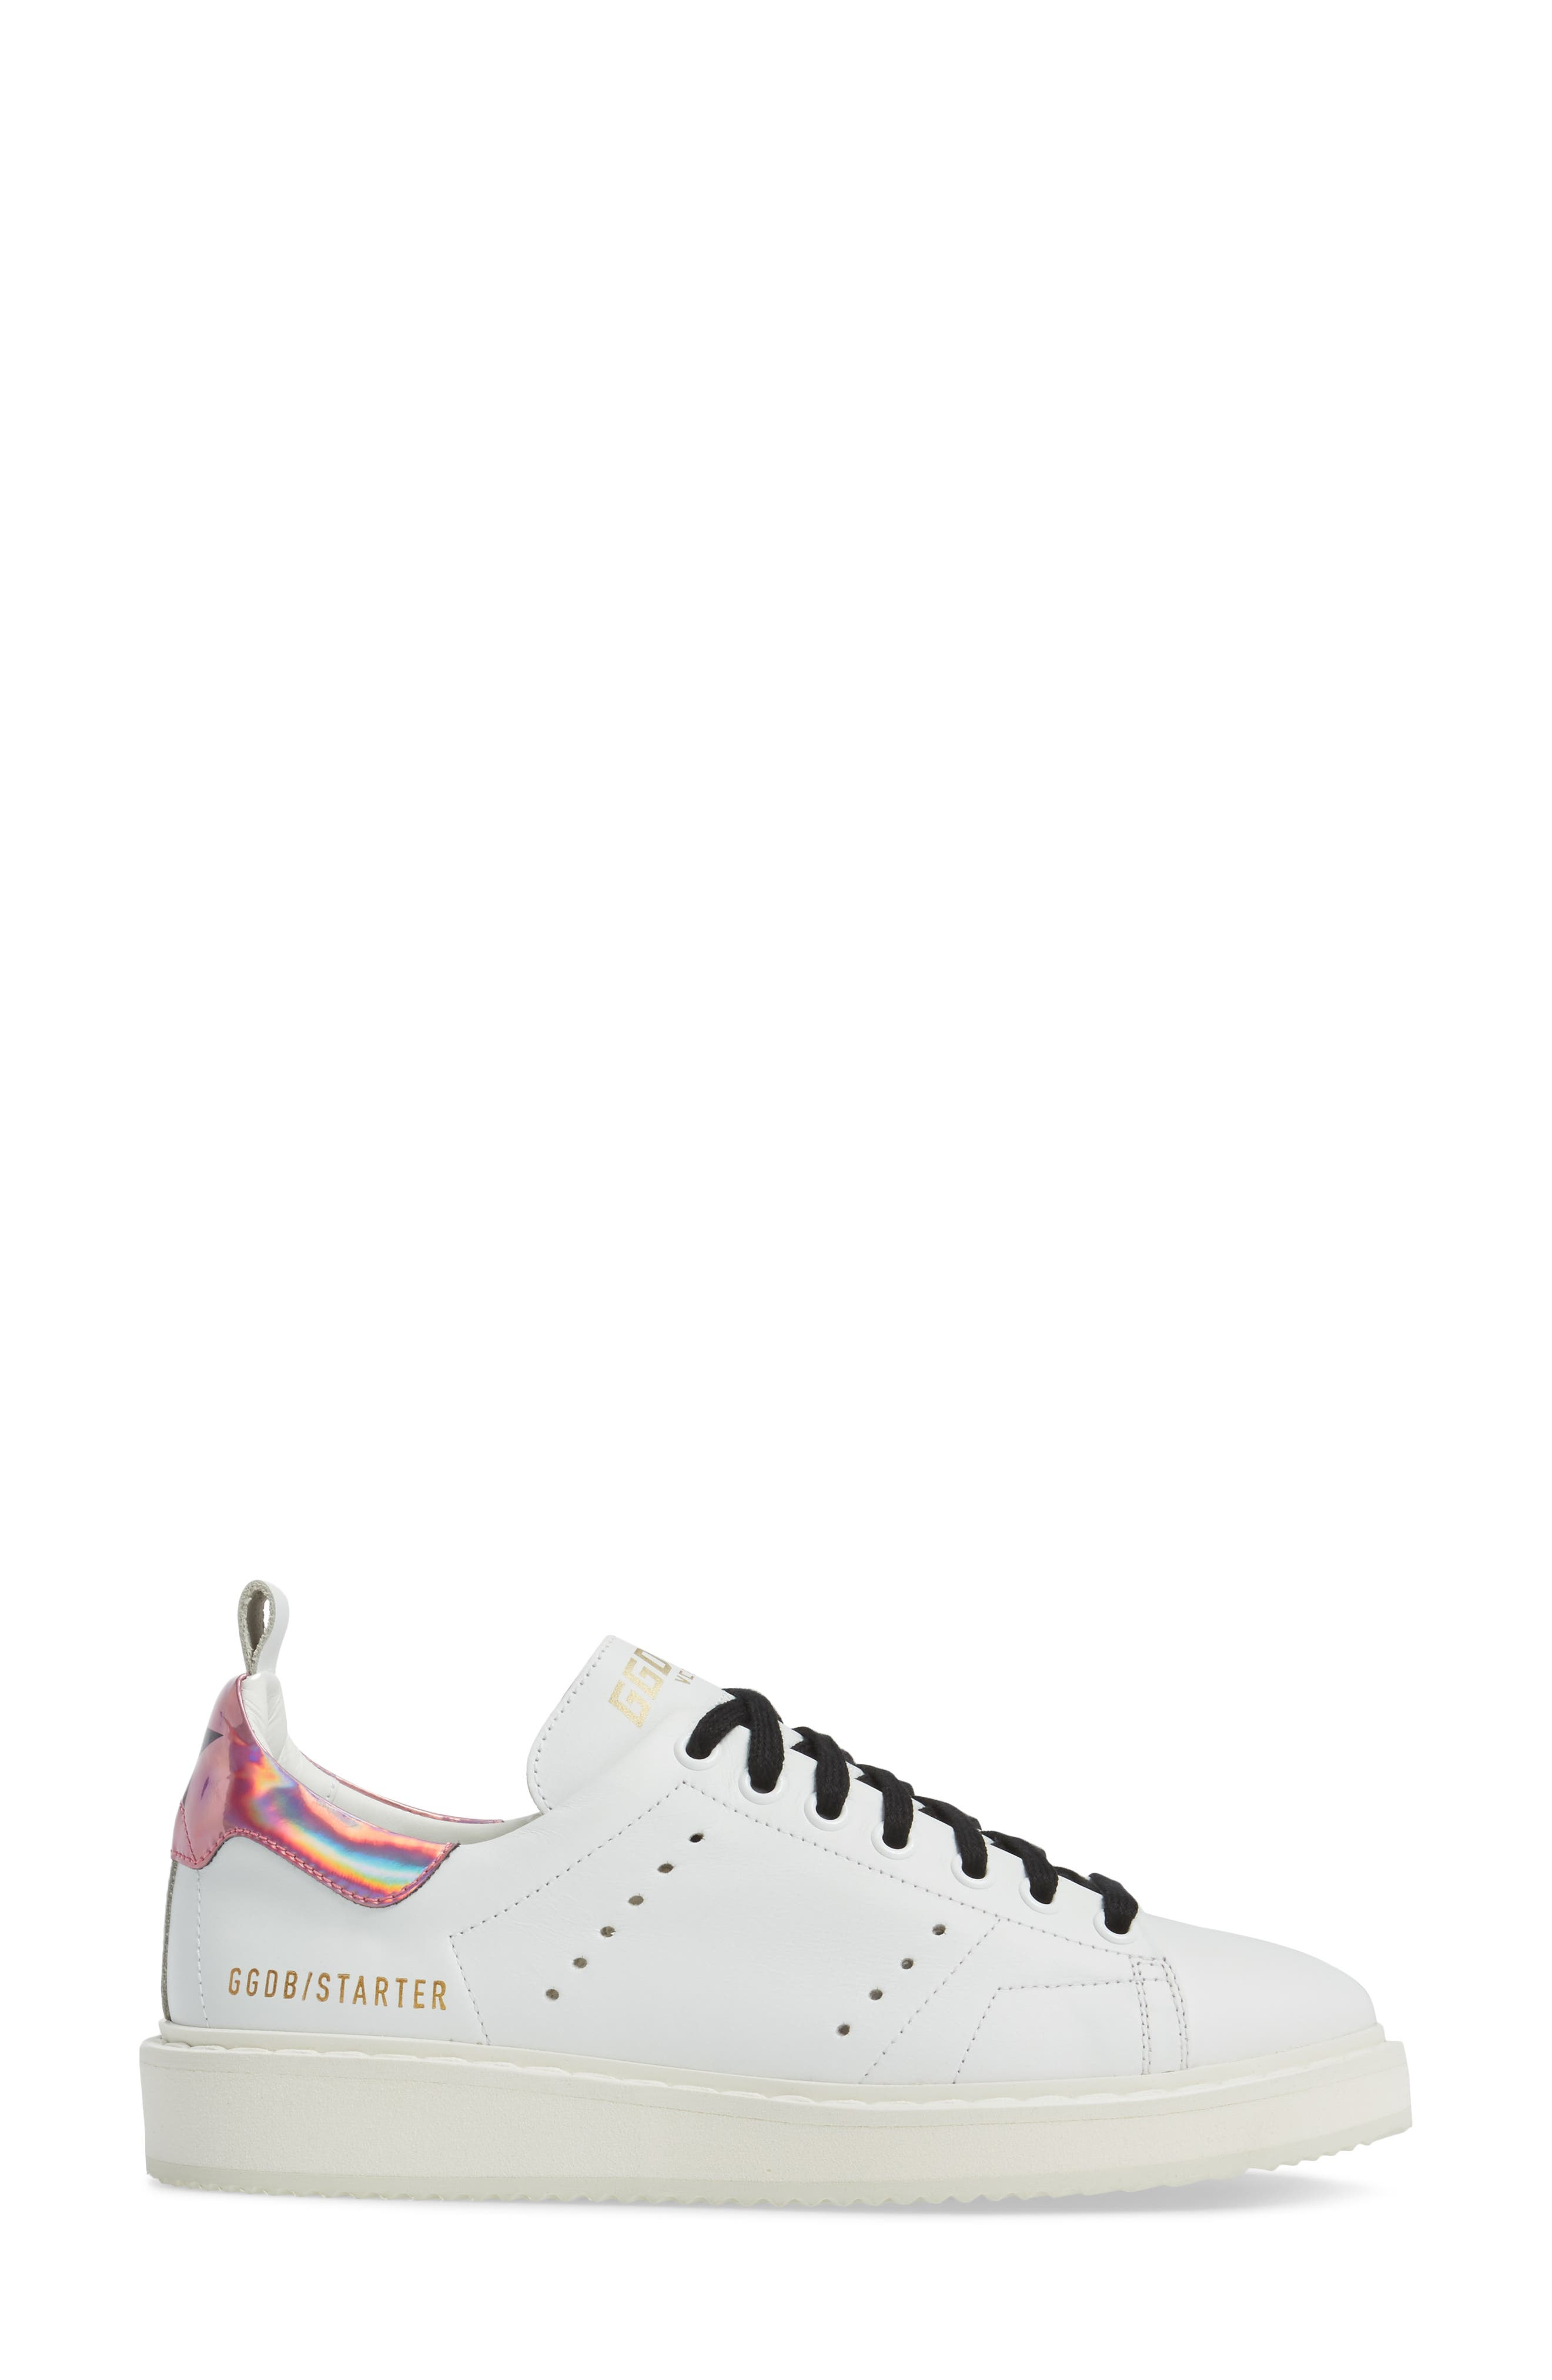 Starter Low Top Sneaker,                             Alternate thumbnail 3, color,                             White/ Pink Jelly